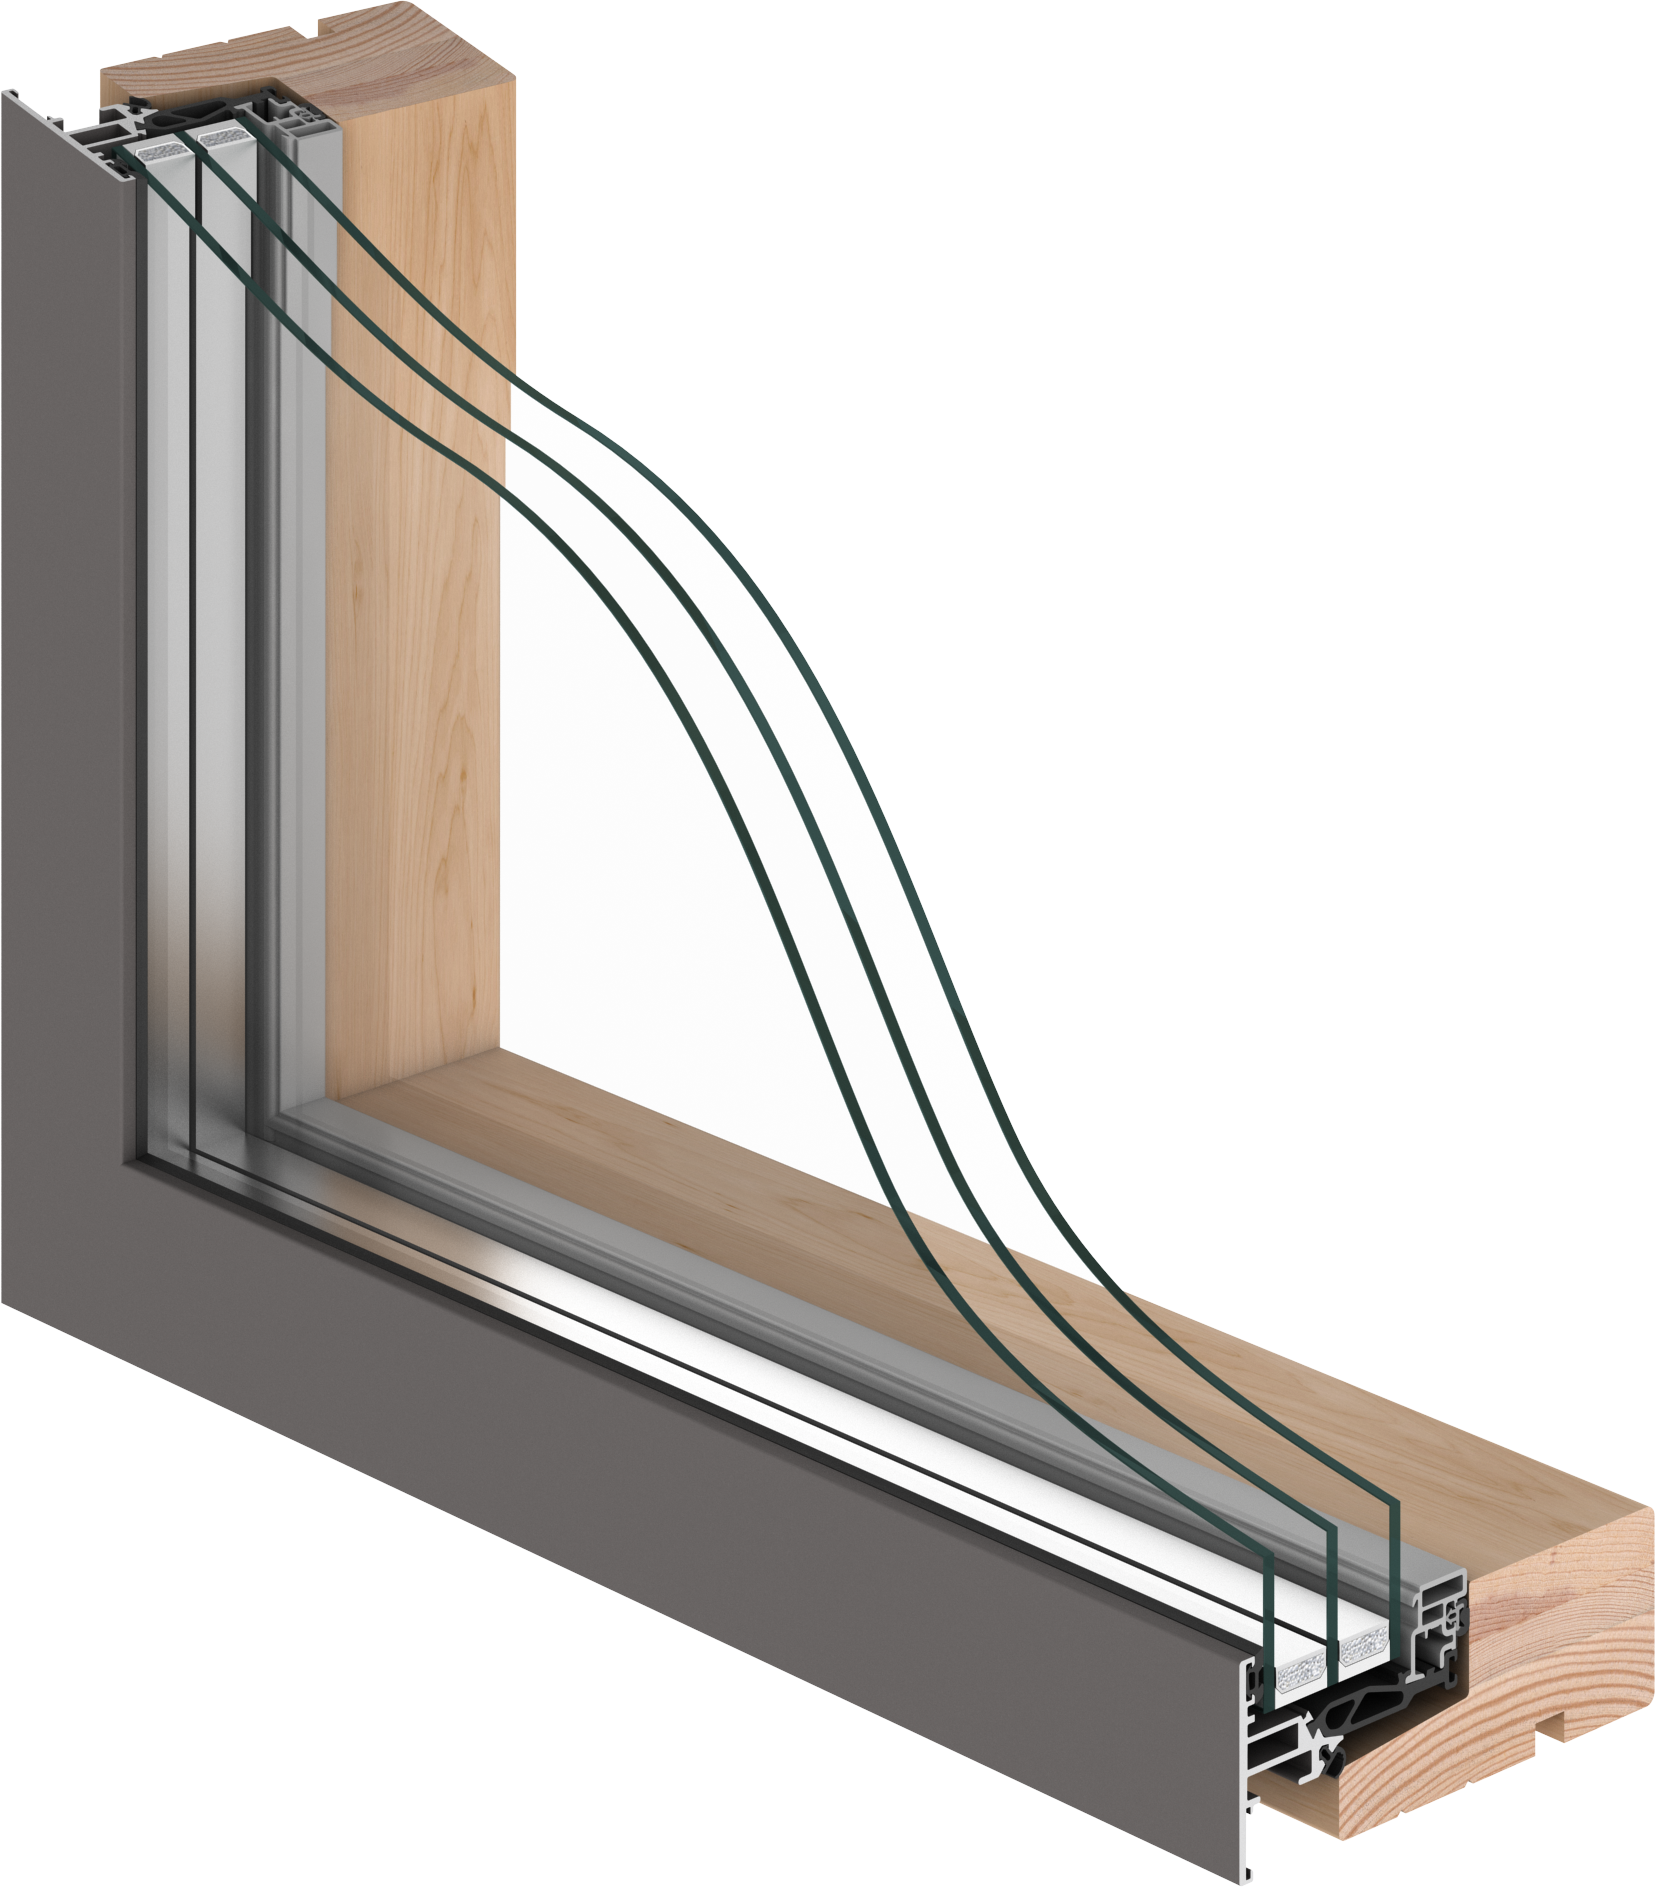 A stylished and sophisticated window with triple glazing